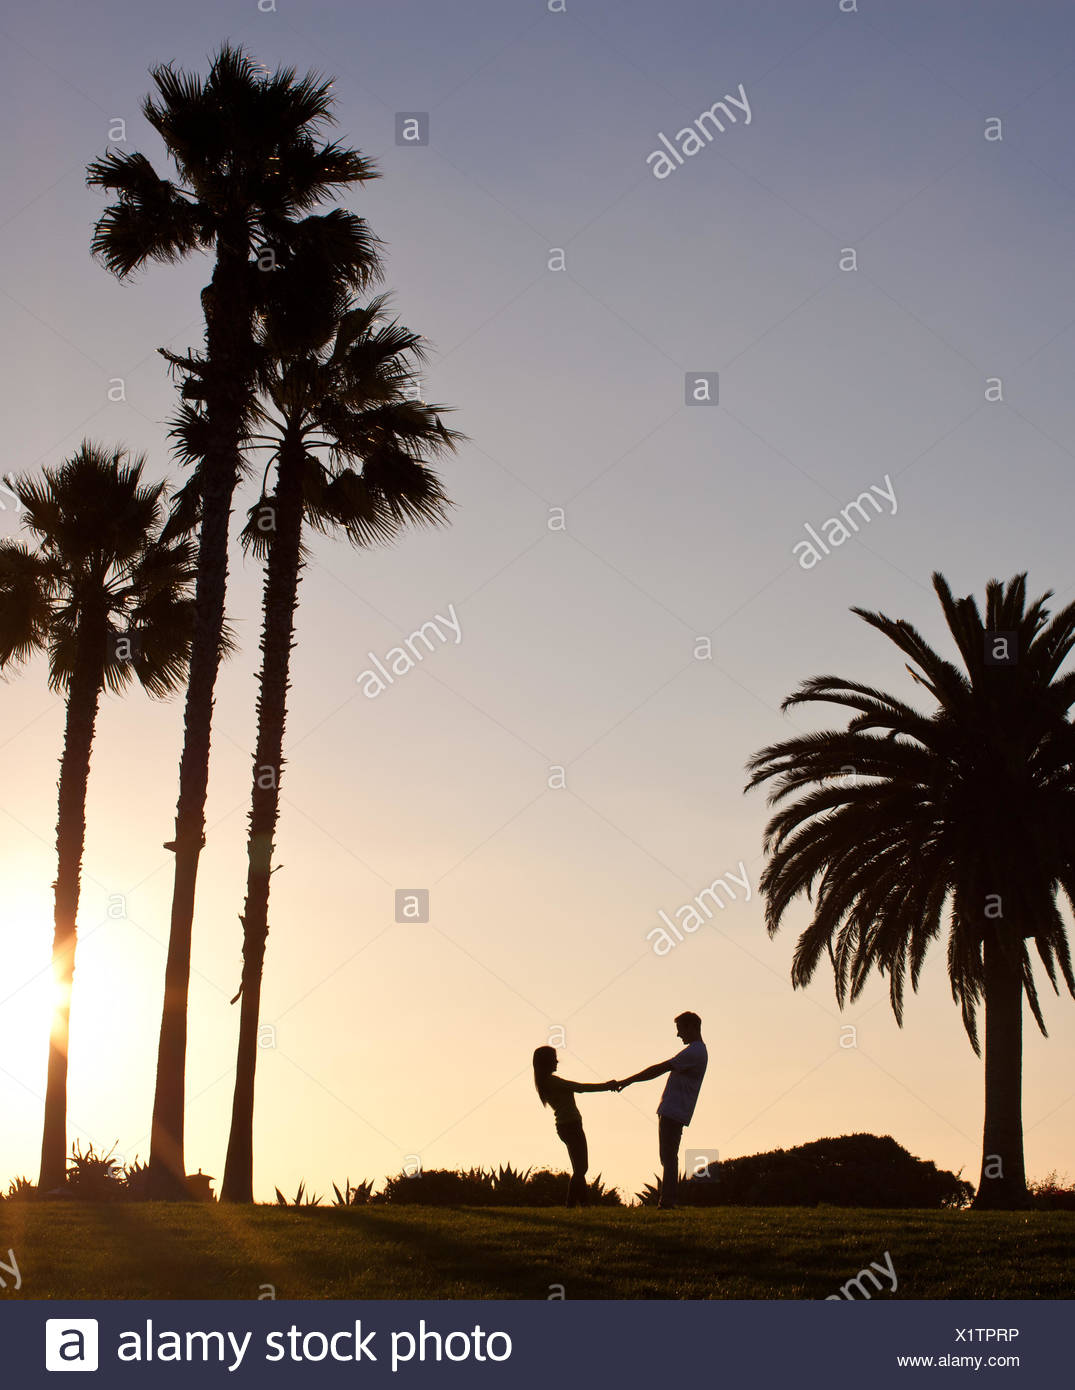 Lovers Silhouette Stock Photos & Lovers Silhouette Stock Images - Alamy